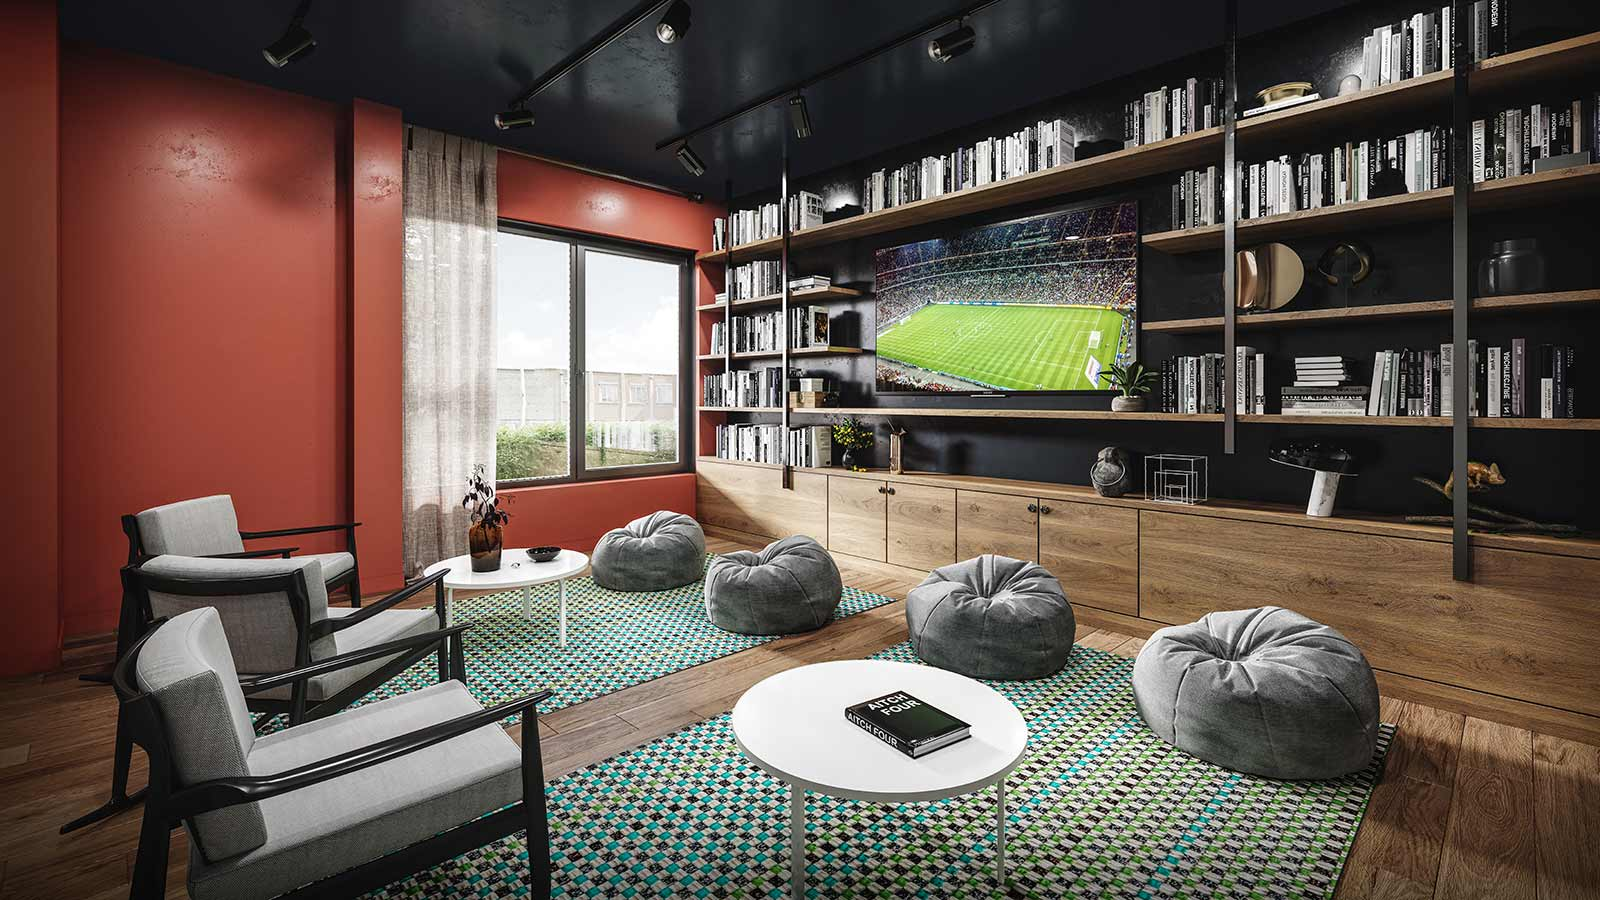 The West Wing communal sitting room